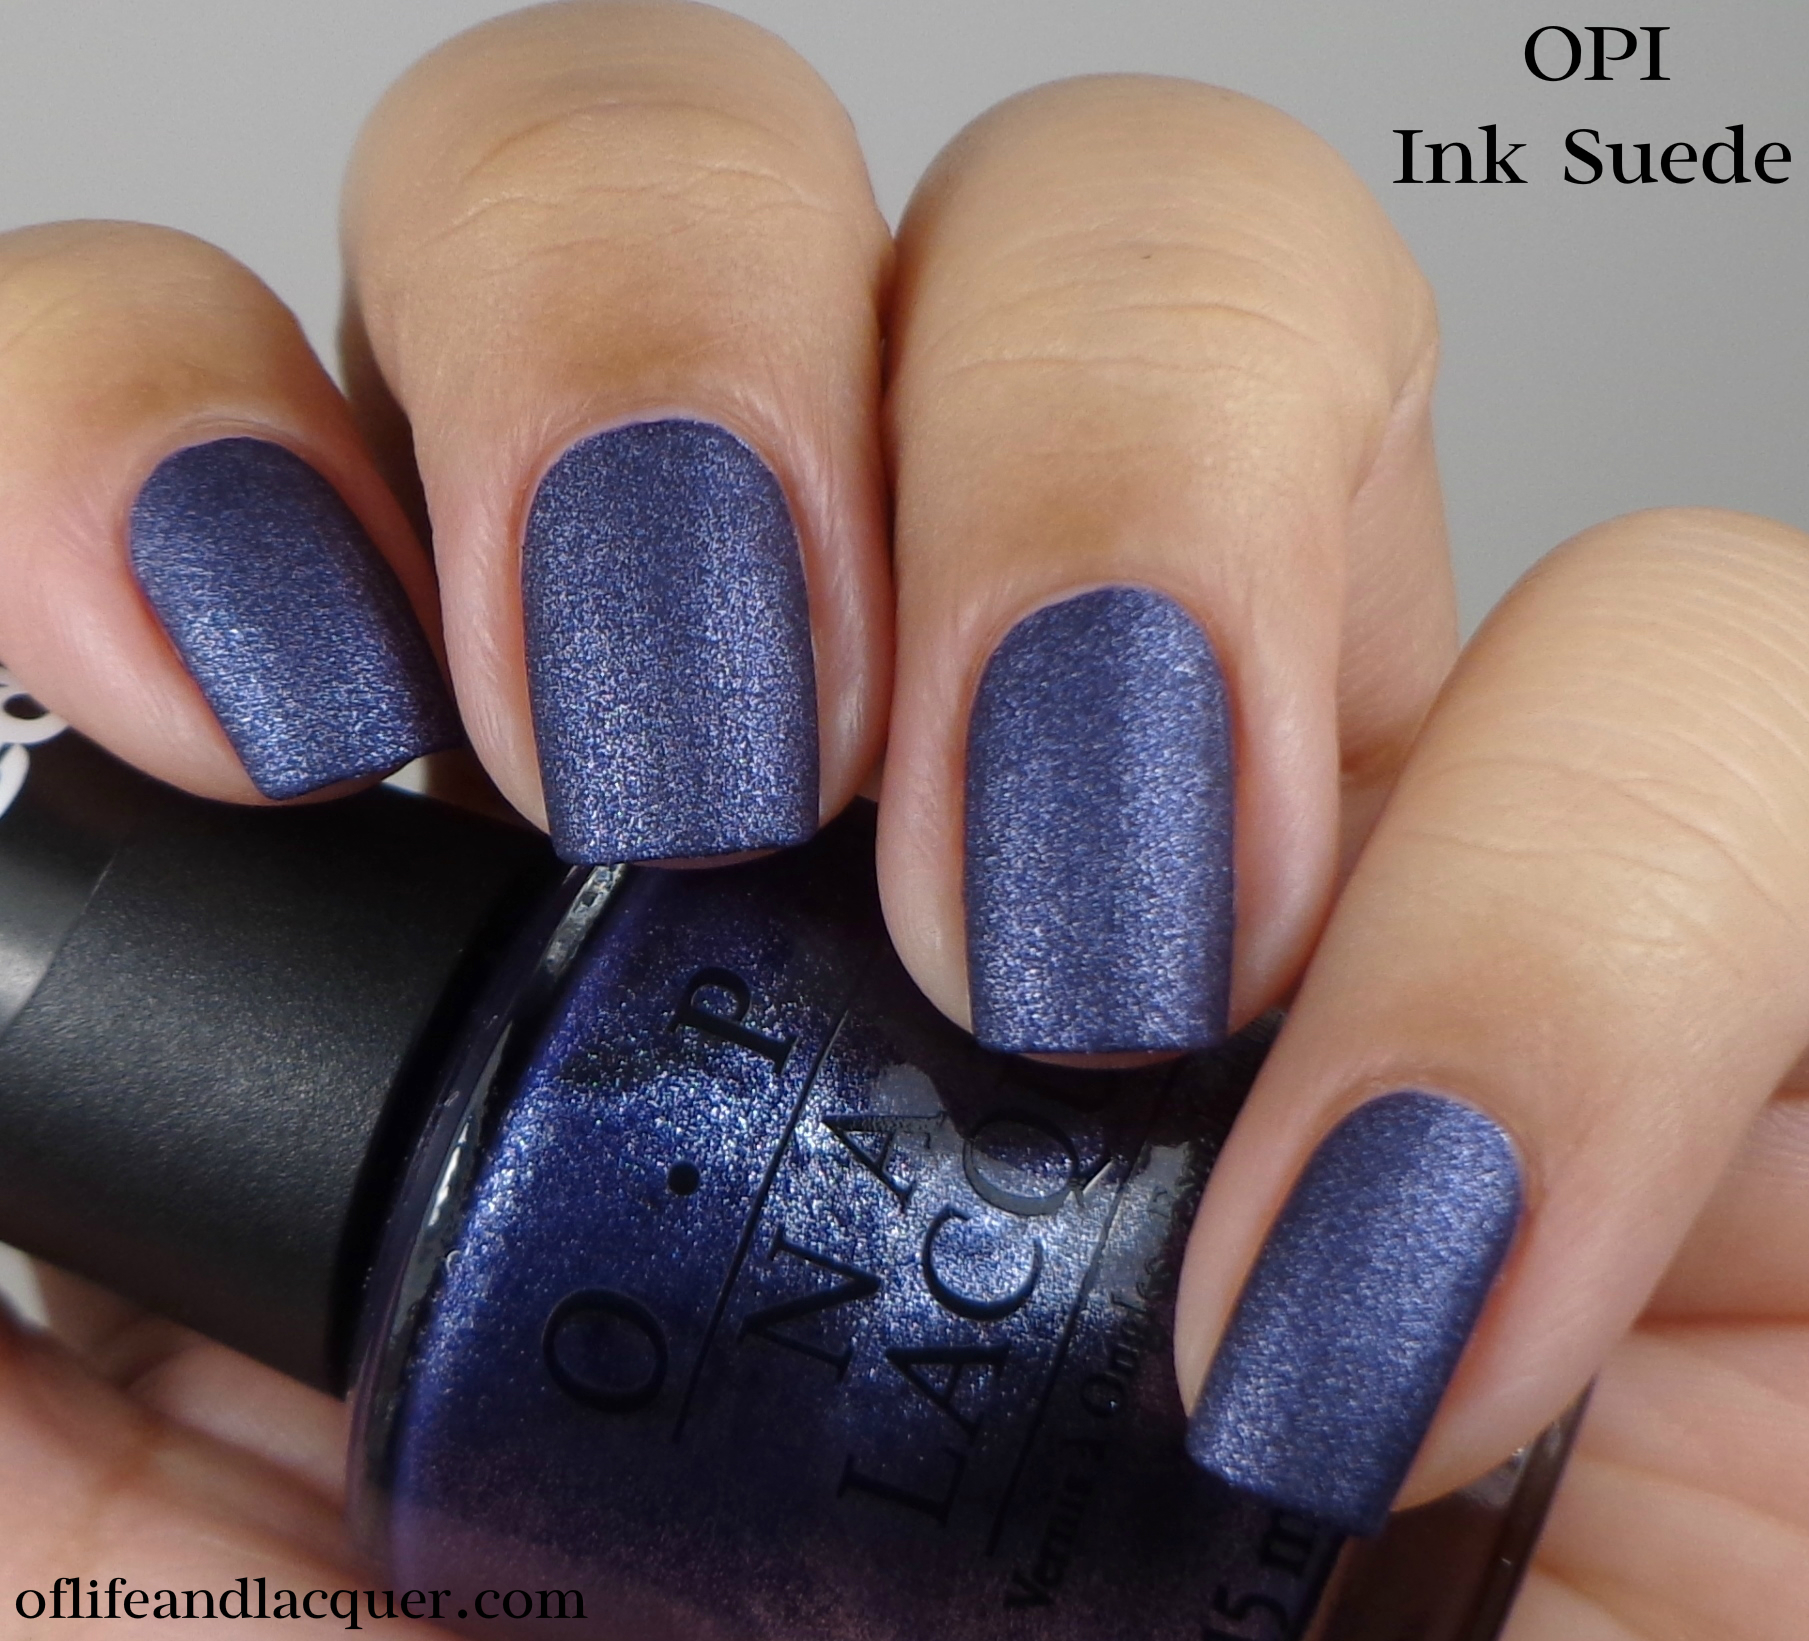 OPI Ink Suede 1a - Of Life and Lacquer